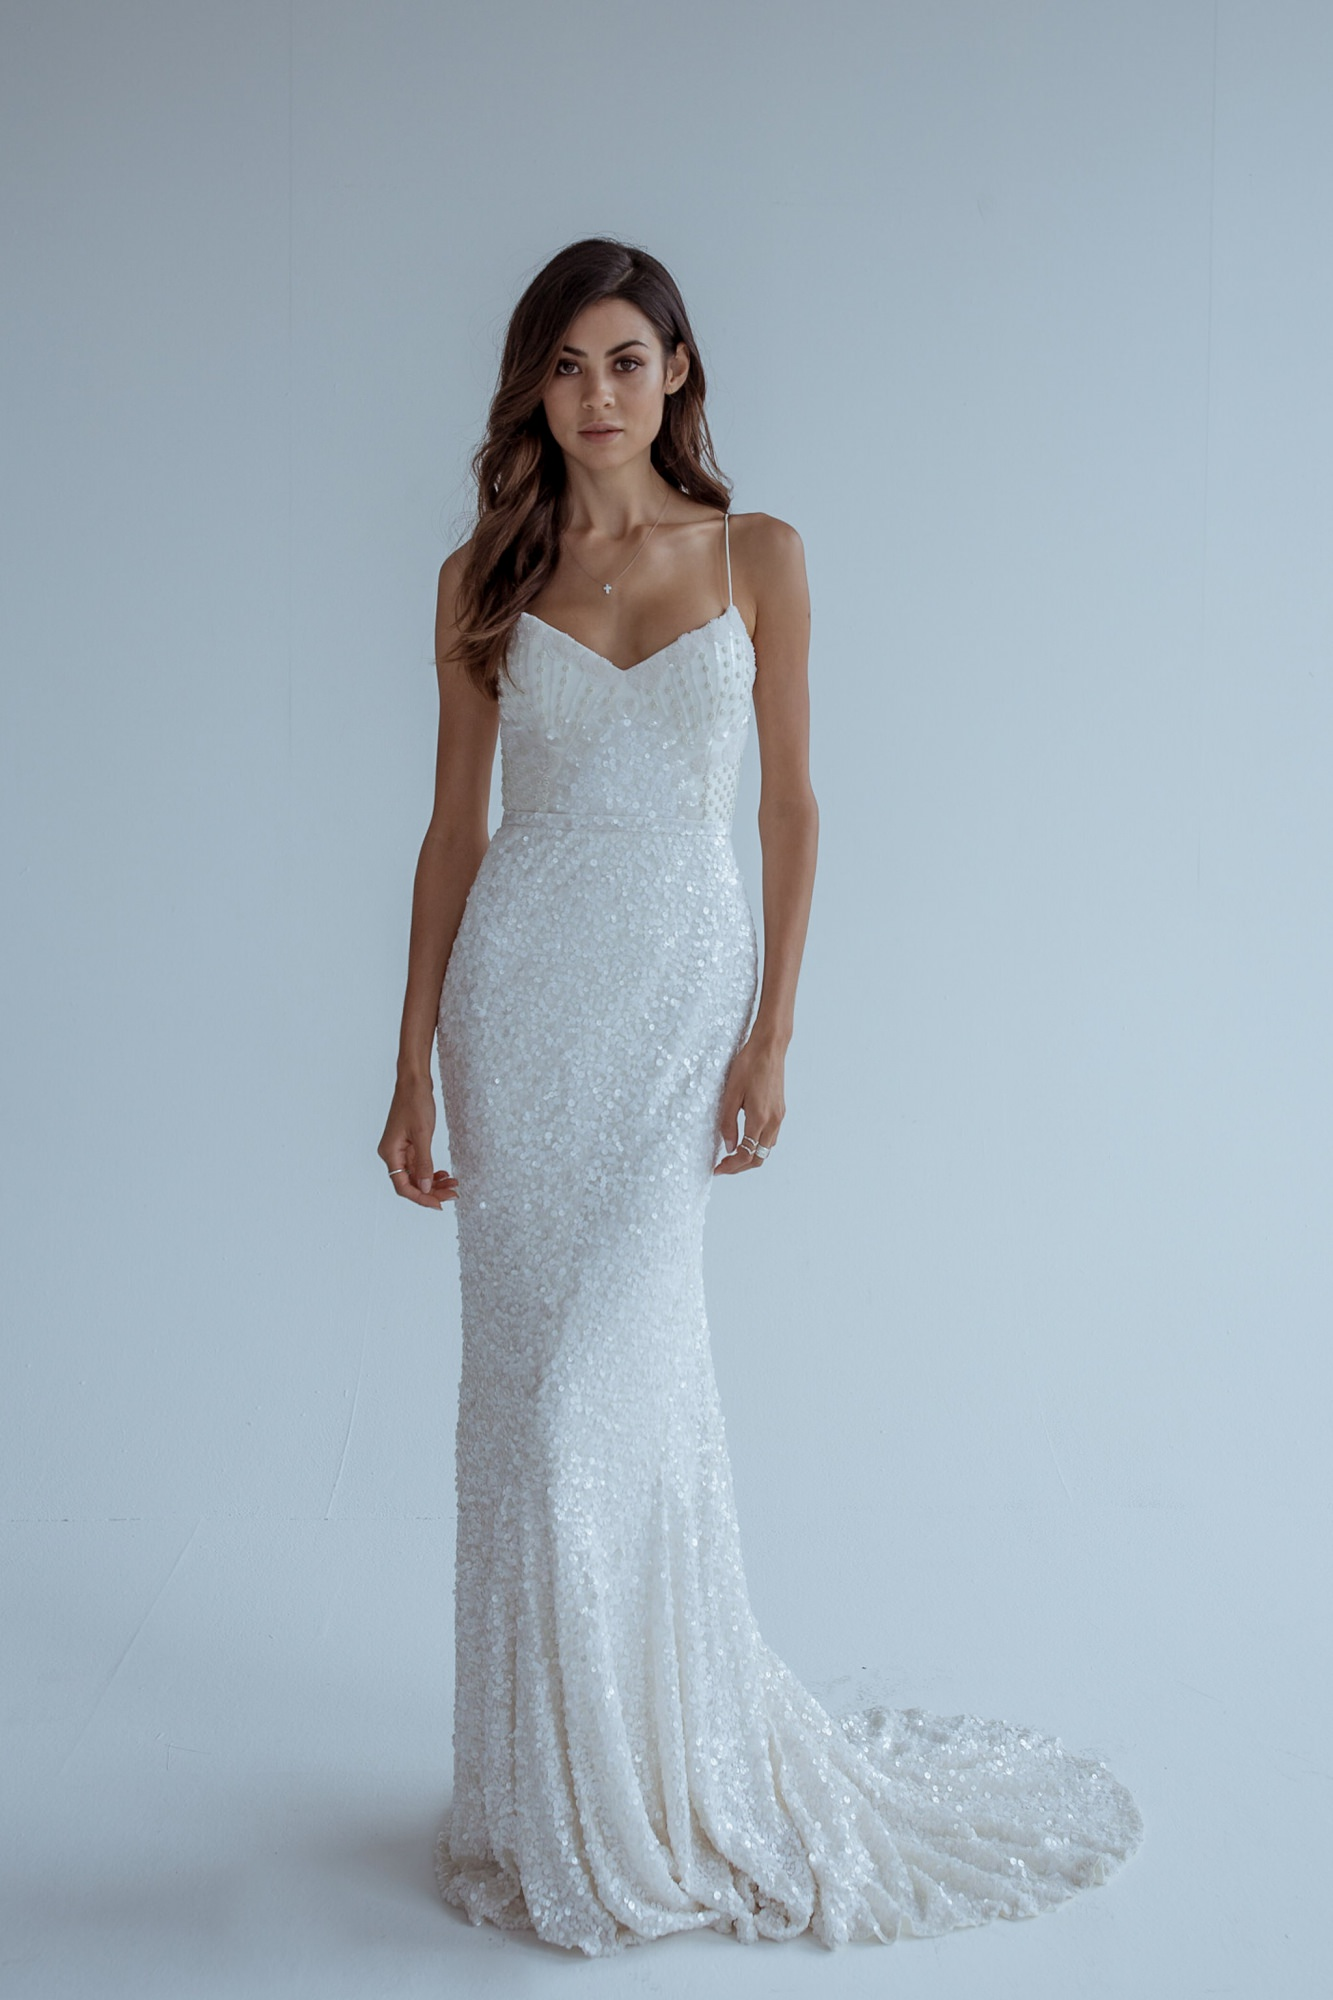 The 2018 wedding dress collection from Karen Willis Holmes. Available exclusively at Paperswan Bride